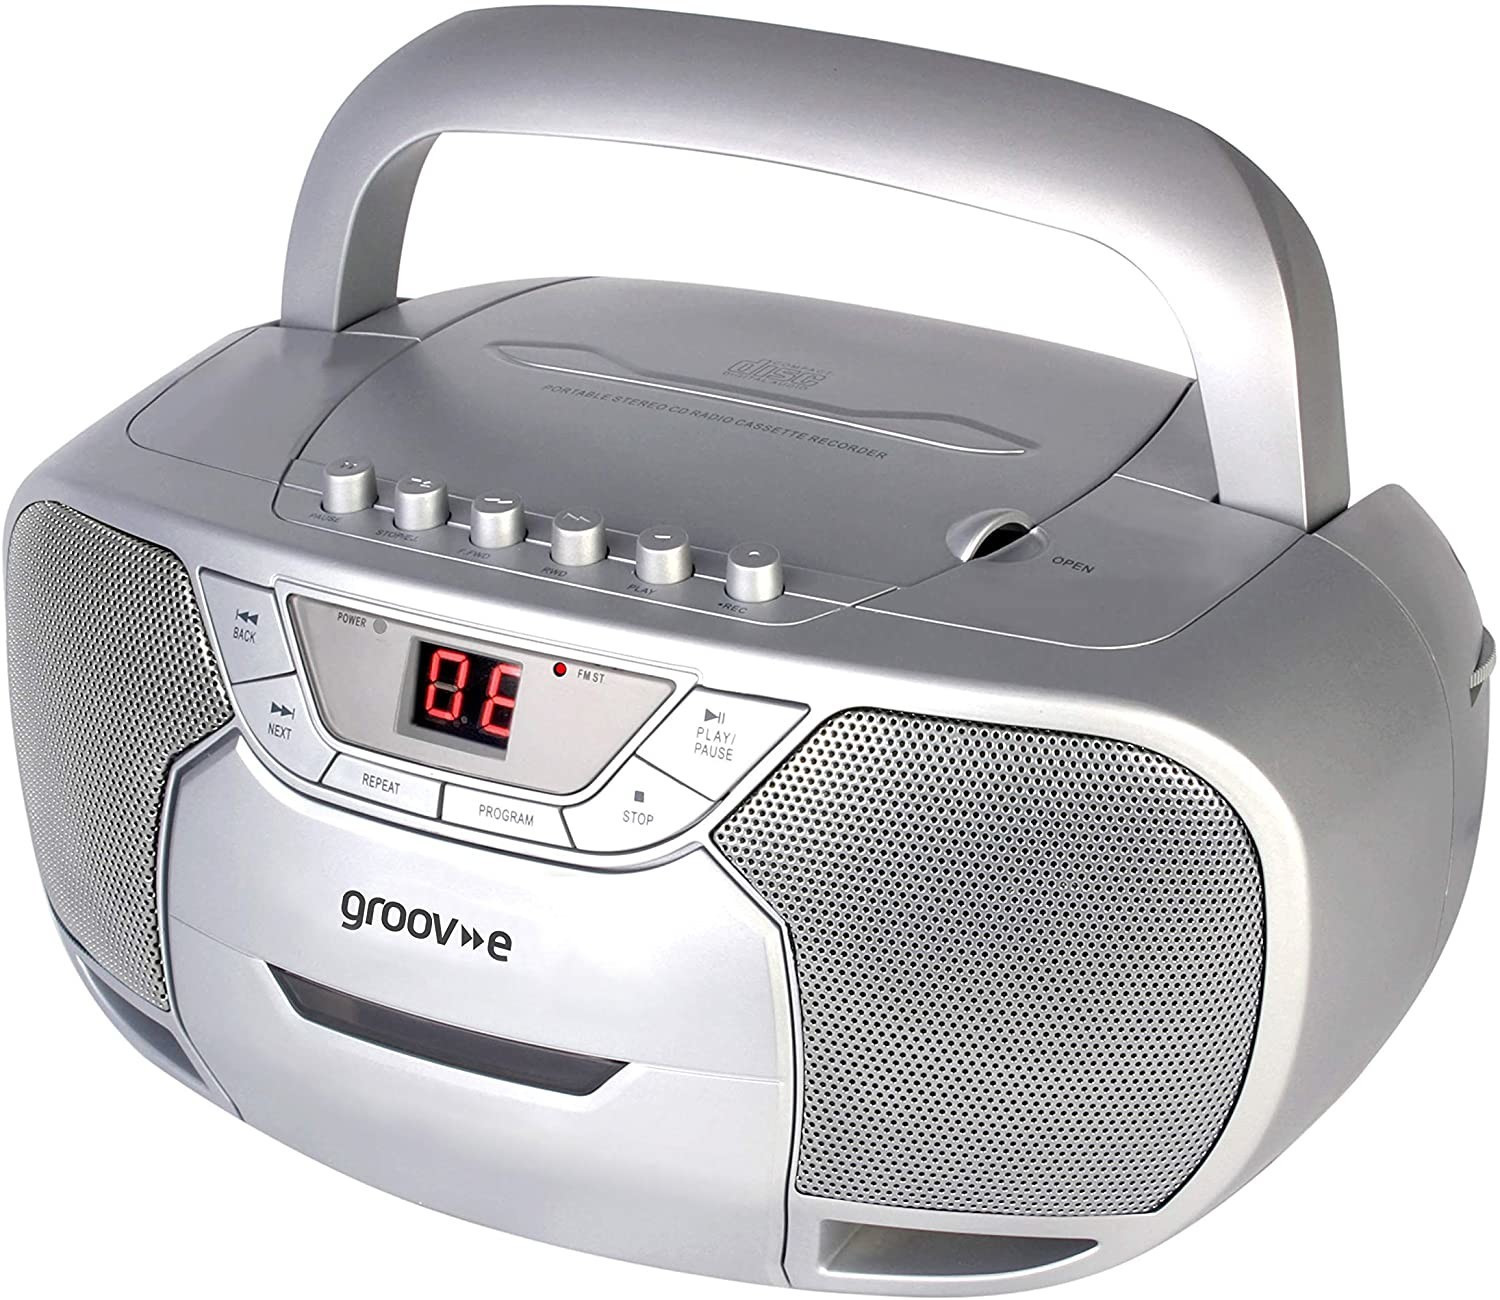 Image of Groov-e Classic Boombox Portable CD Player with Cassette & Radio